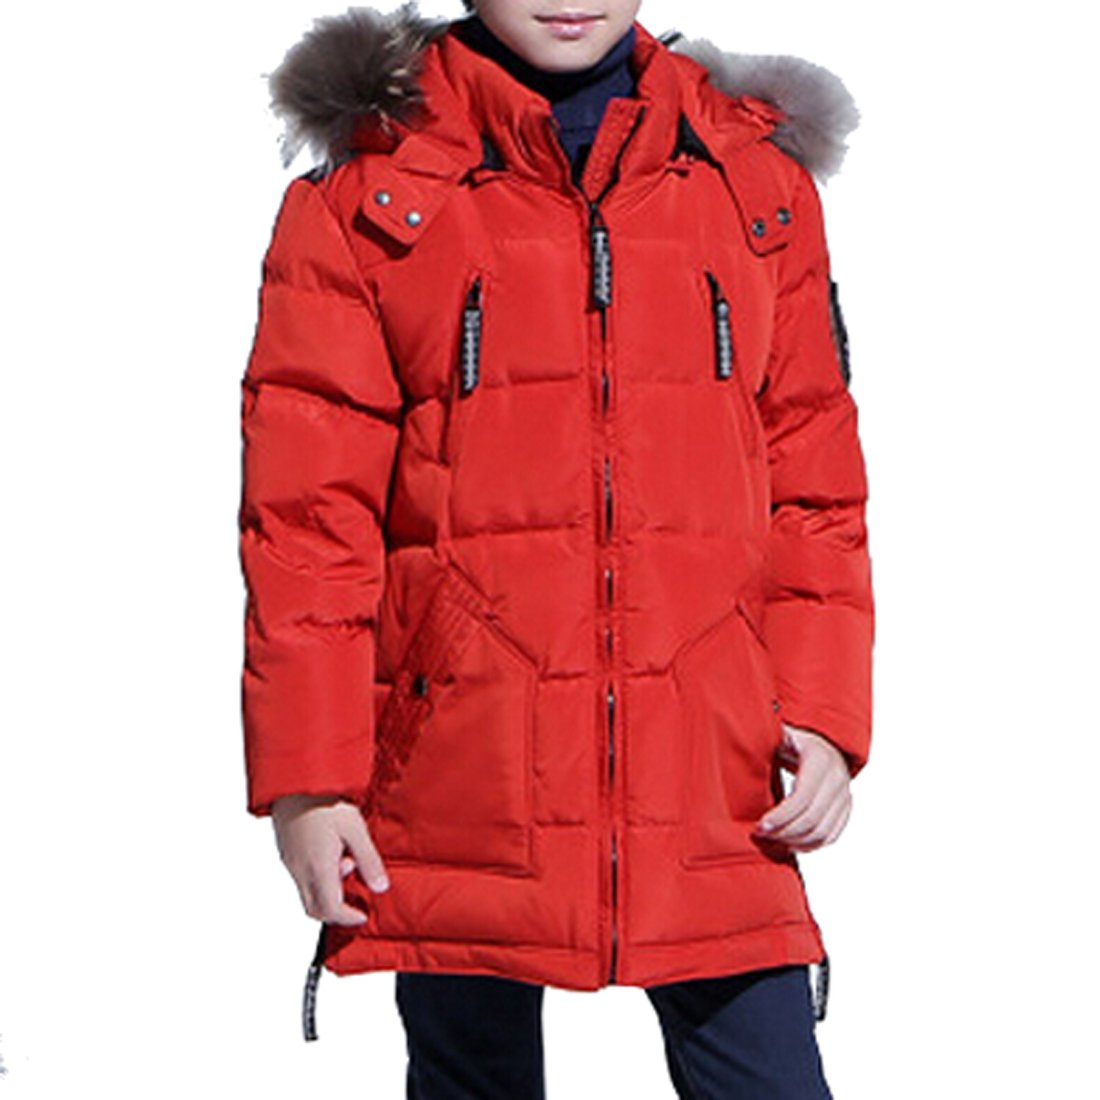 Shengdilu Big Boys' Down Puffer Jacket Parka Fox Fur Outwear Outfit Long Coat Kids Winter Clothes 4T 5T Red